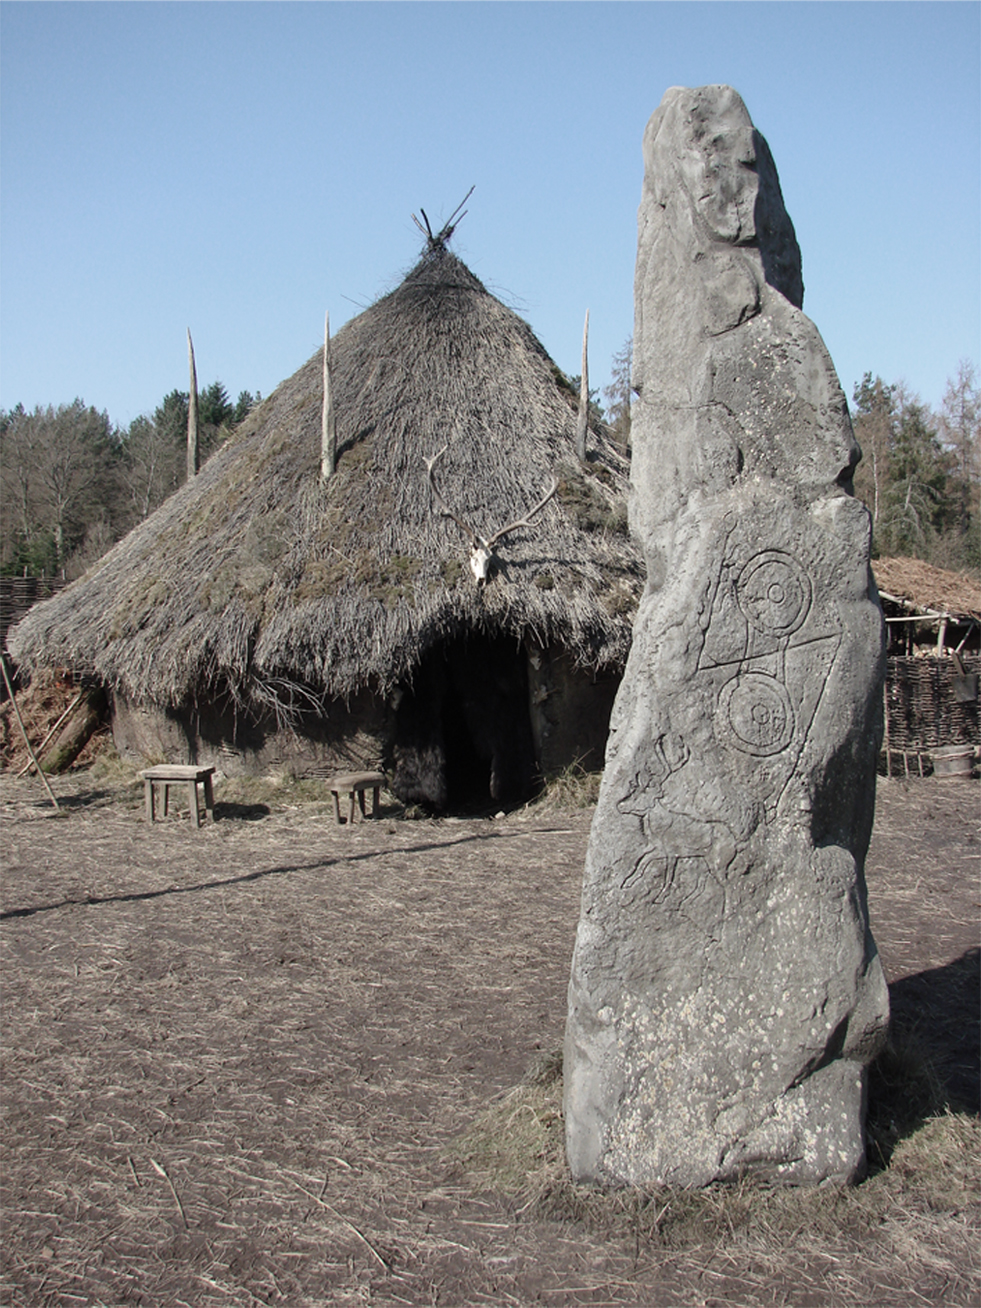 Standing stone decorated with carved Pictish art.